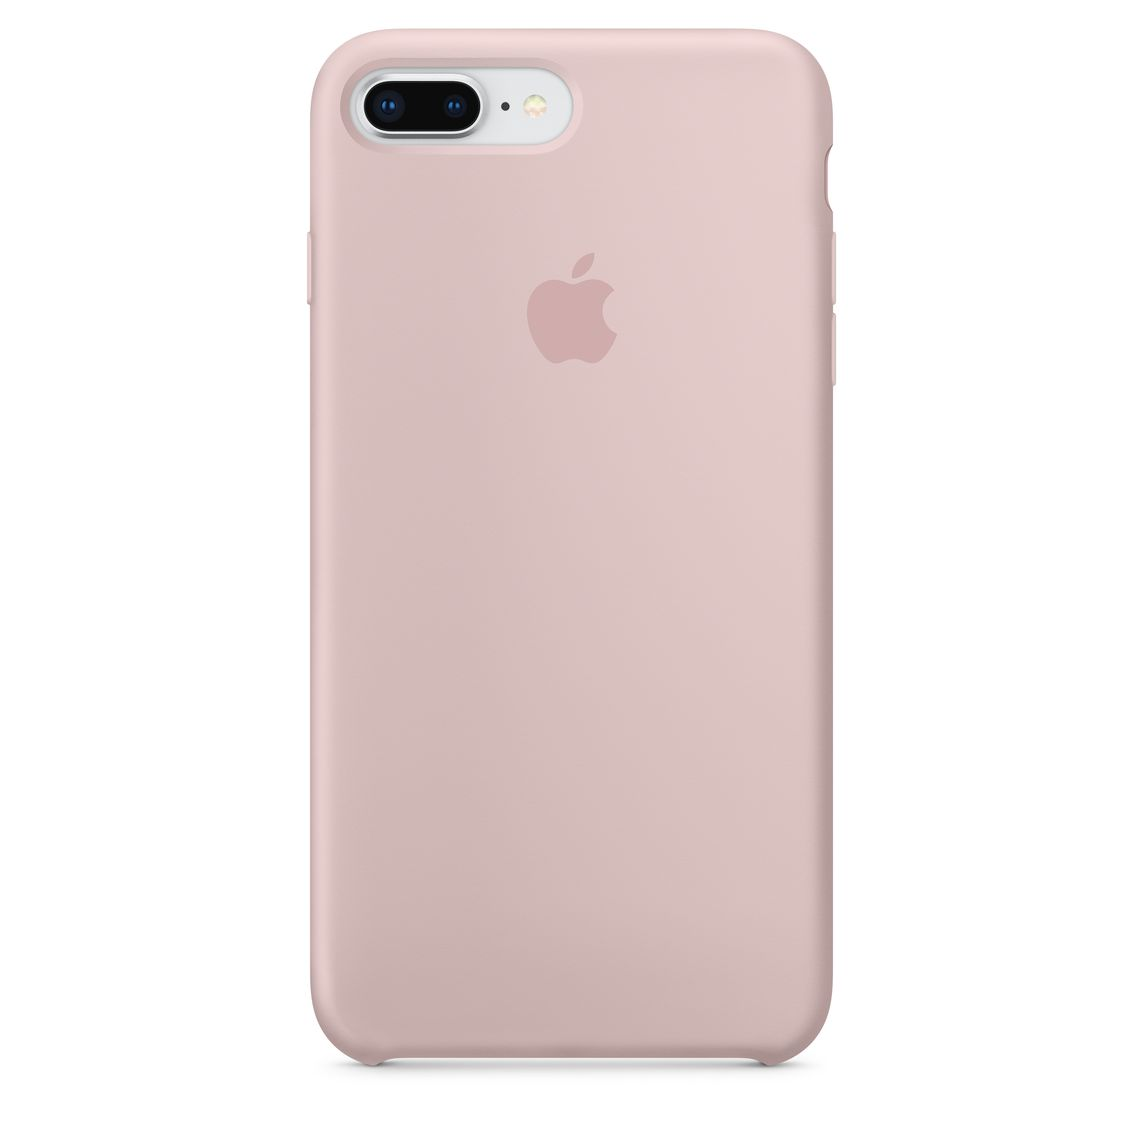 new products fd4b3 38efc iPhone 8 Plus / 7 Plus Silicone Case - Pink Sand